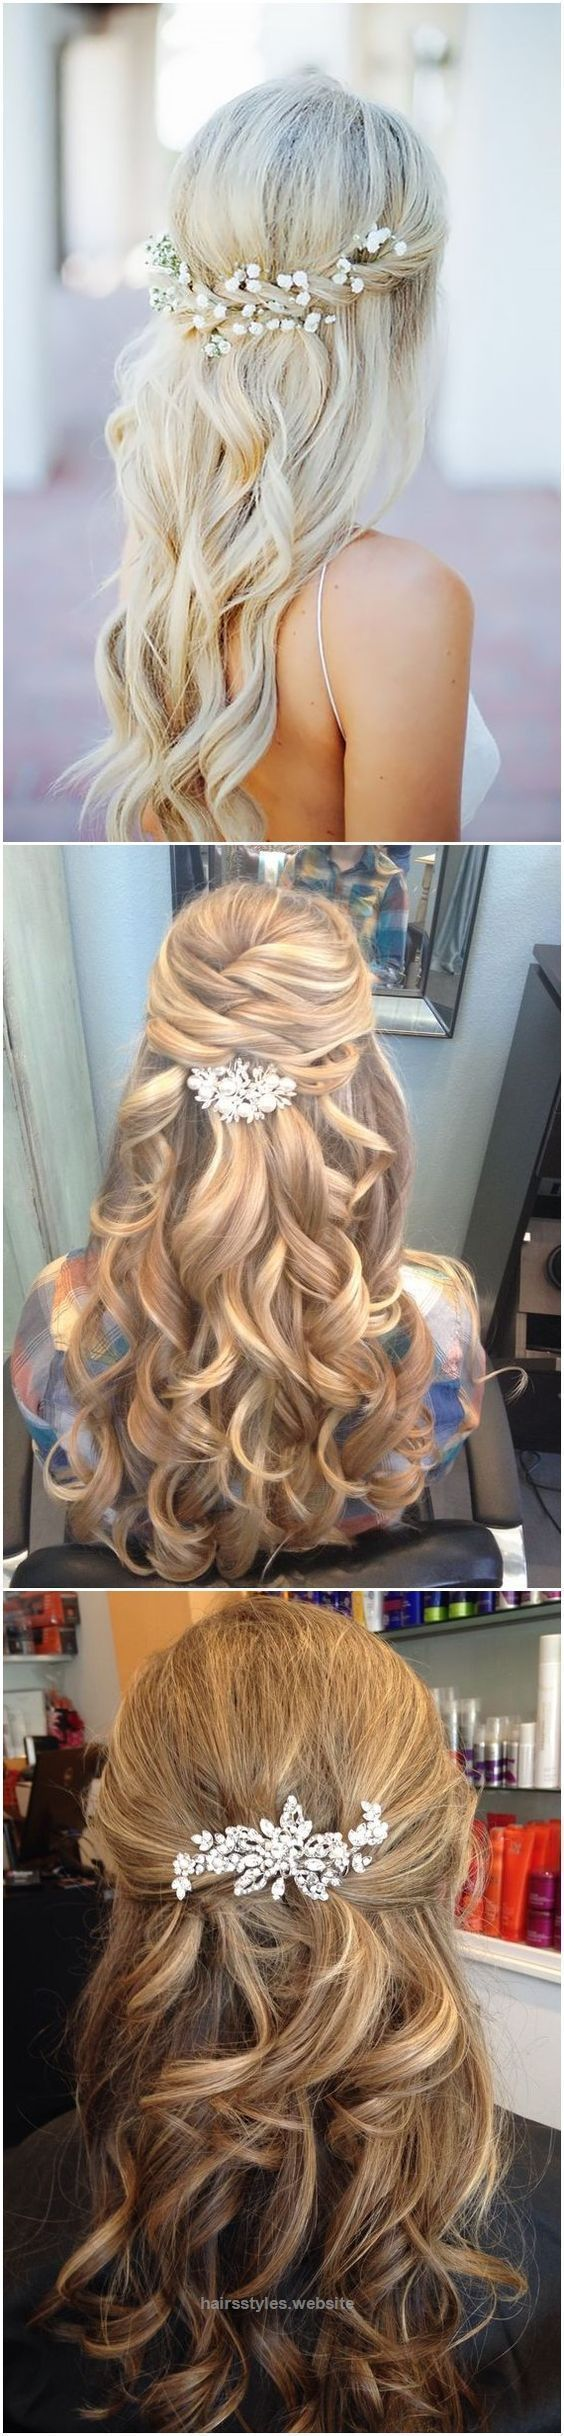 Check it out Wedding Hairstyles » 22 Half Up and Half Down Wedding Hairstyles to Get You Inspired » See more: www.weddinginclud… The post Wedding Hairstyles » 22 Half Up and Half Down Wedding Ha .. #weddinghairstyles